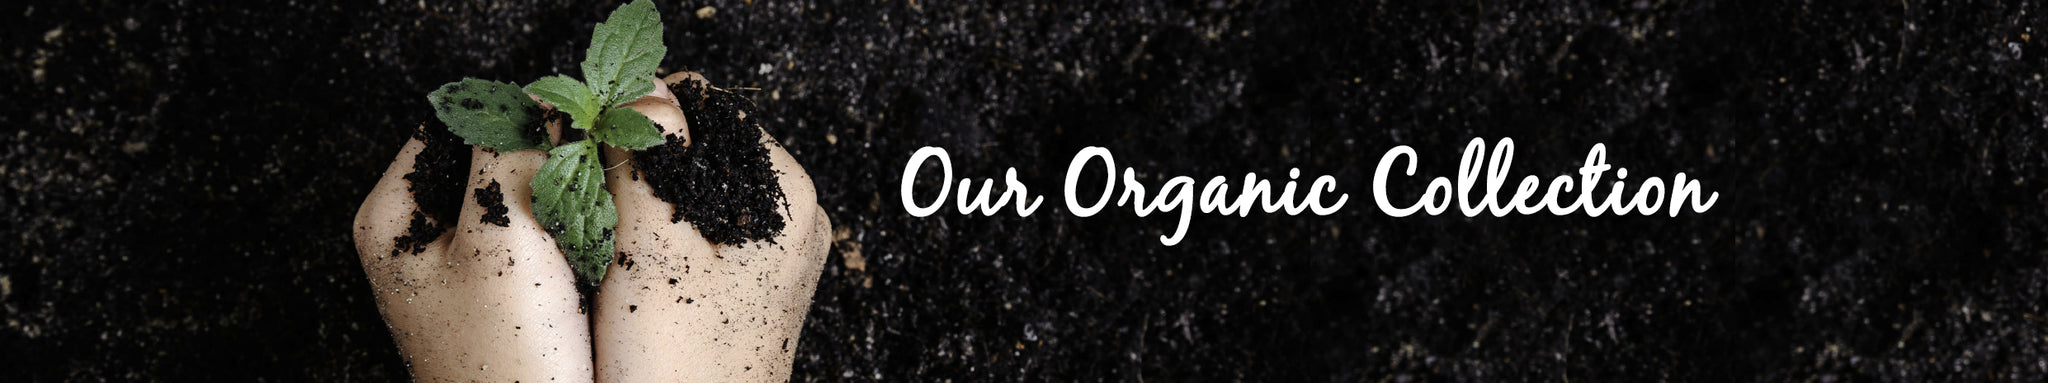 Our Organic Collection